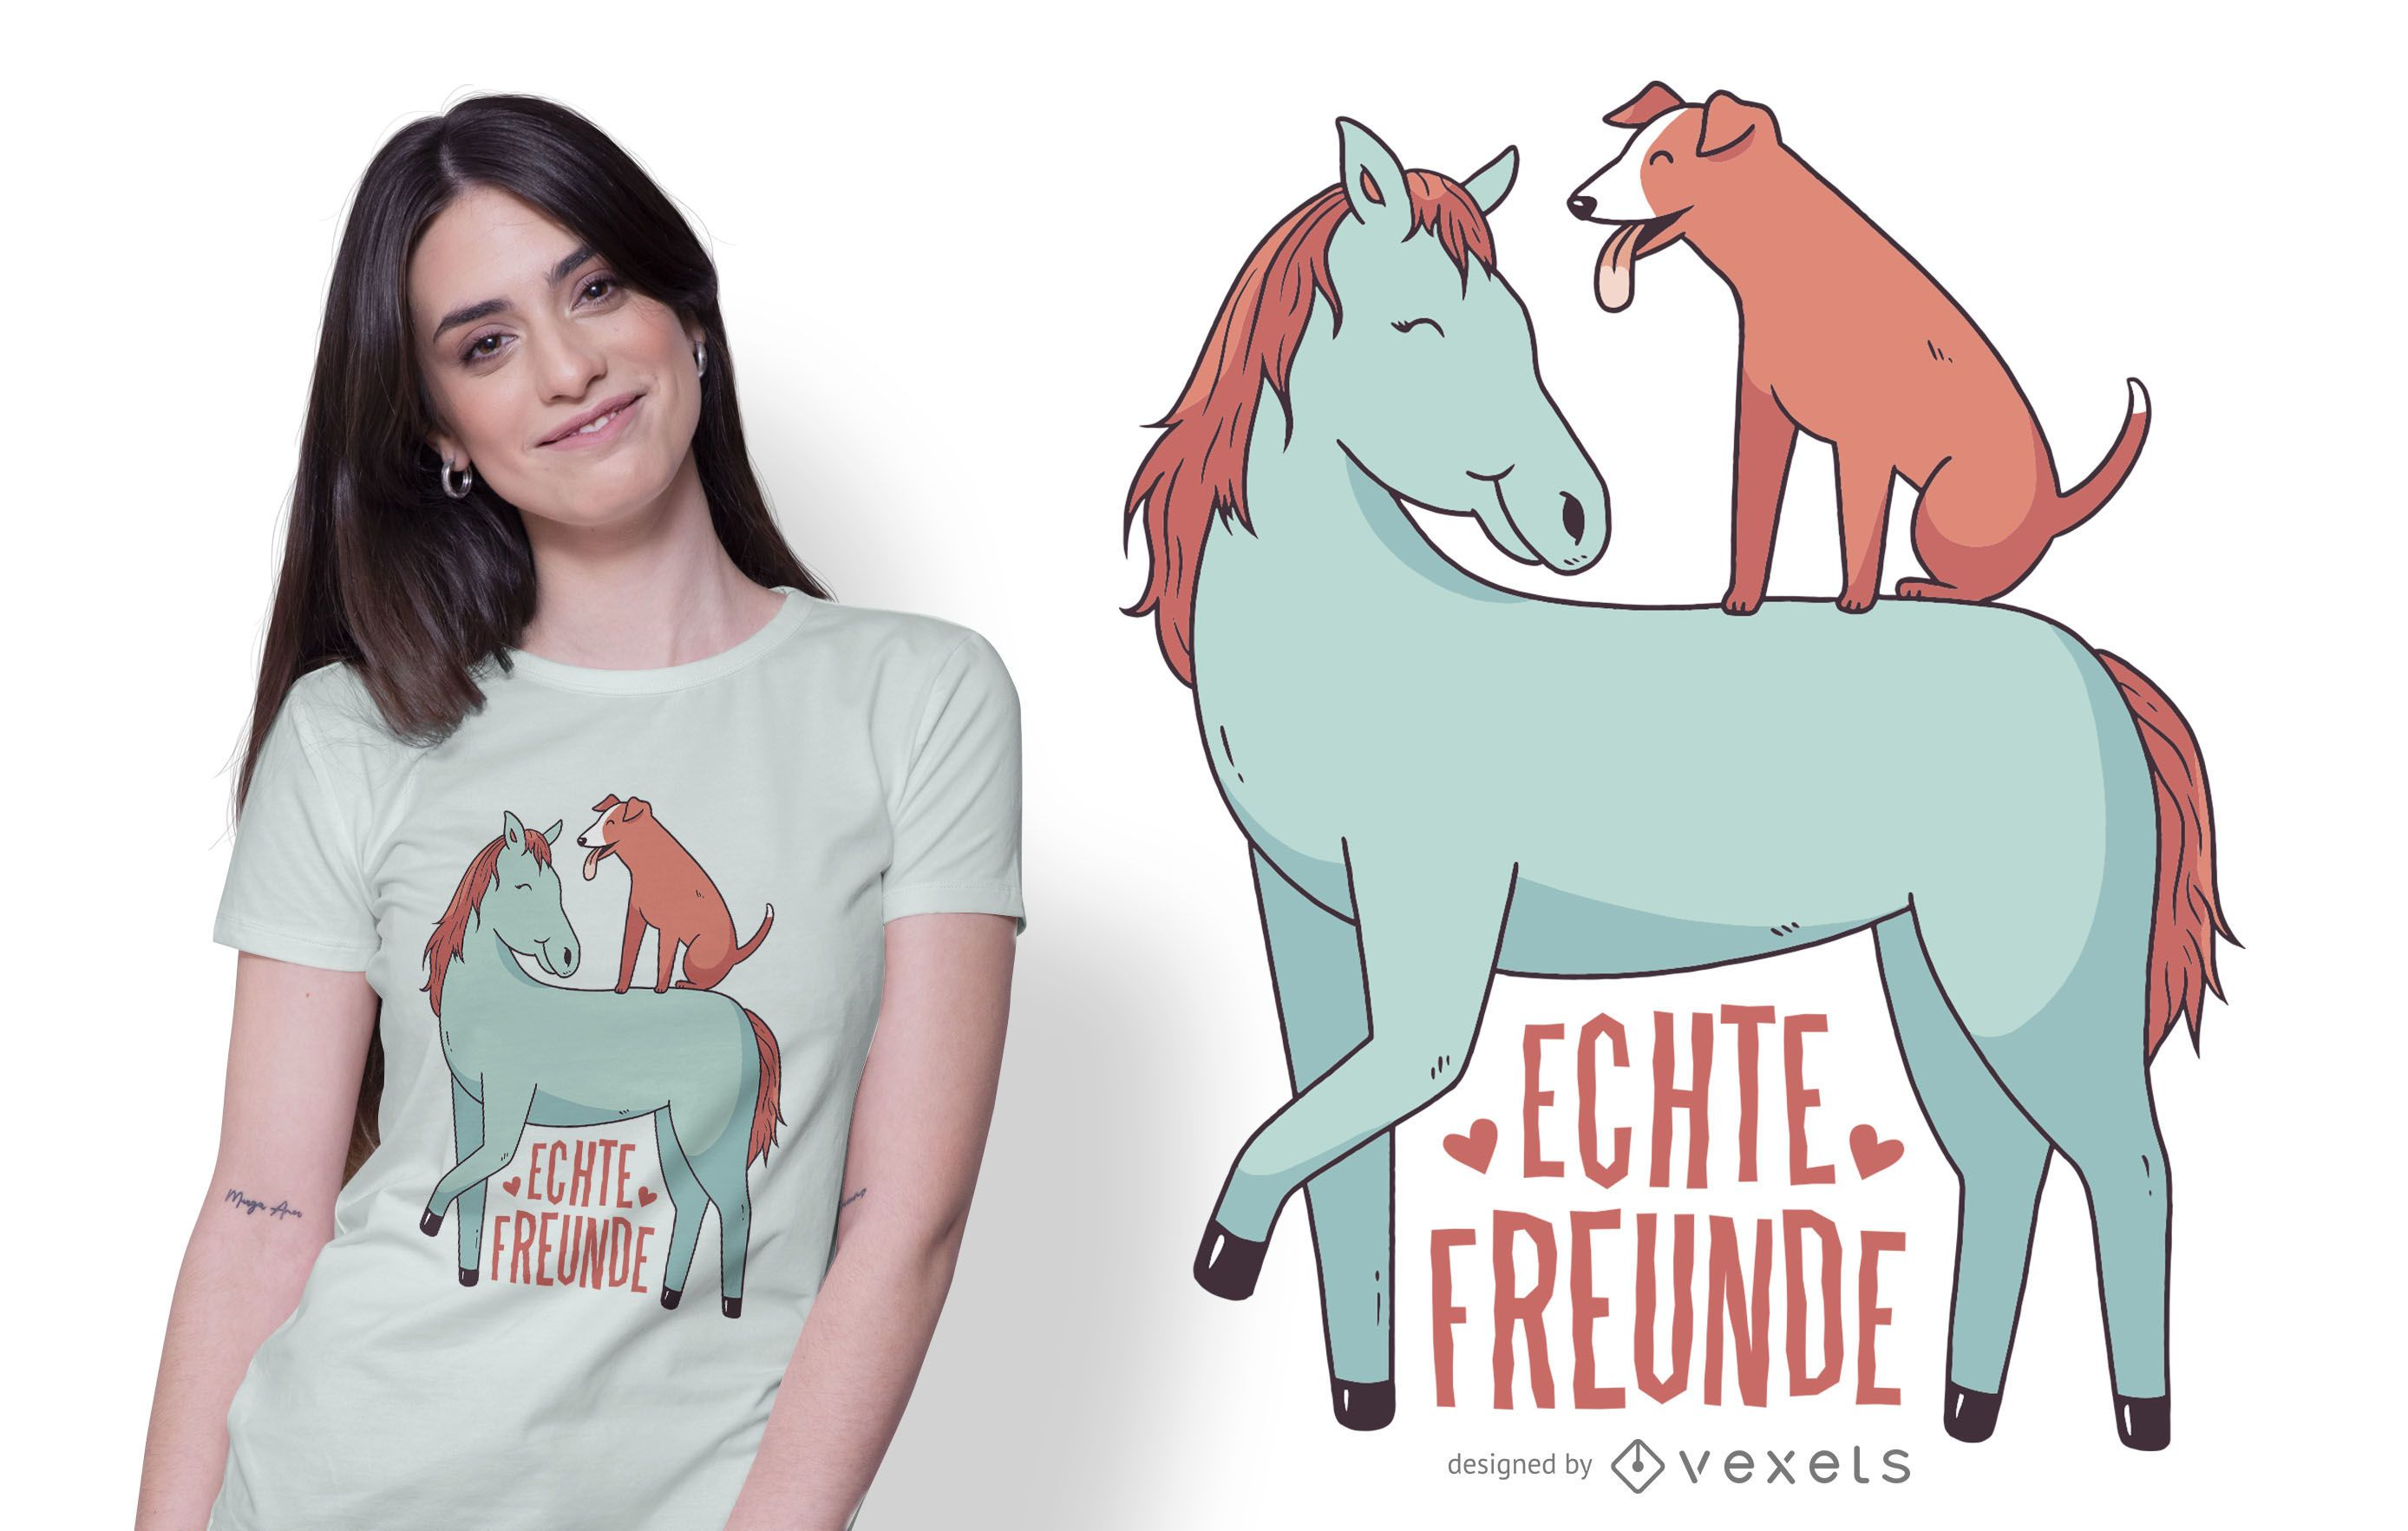 Dog and horse t-shirt design